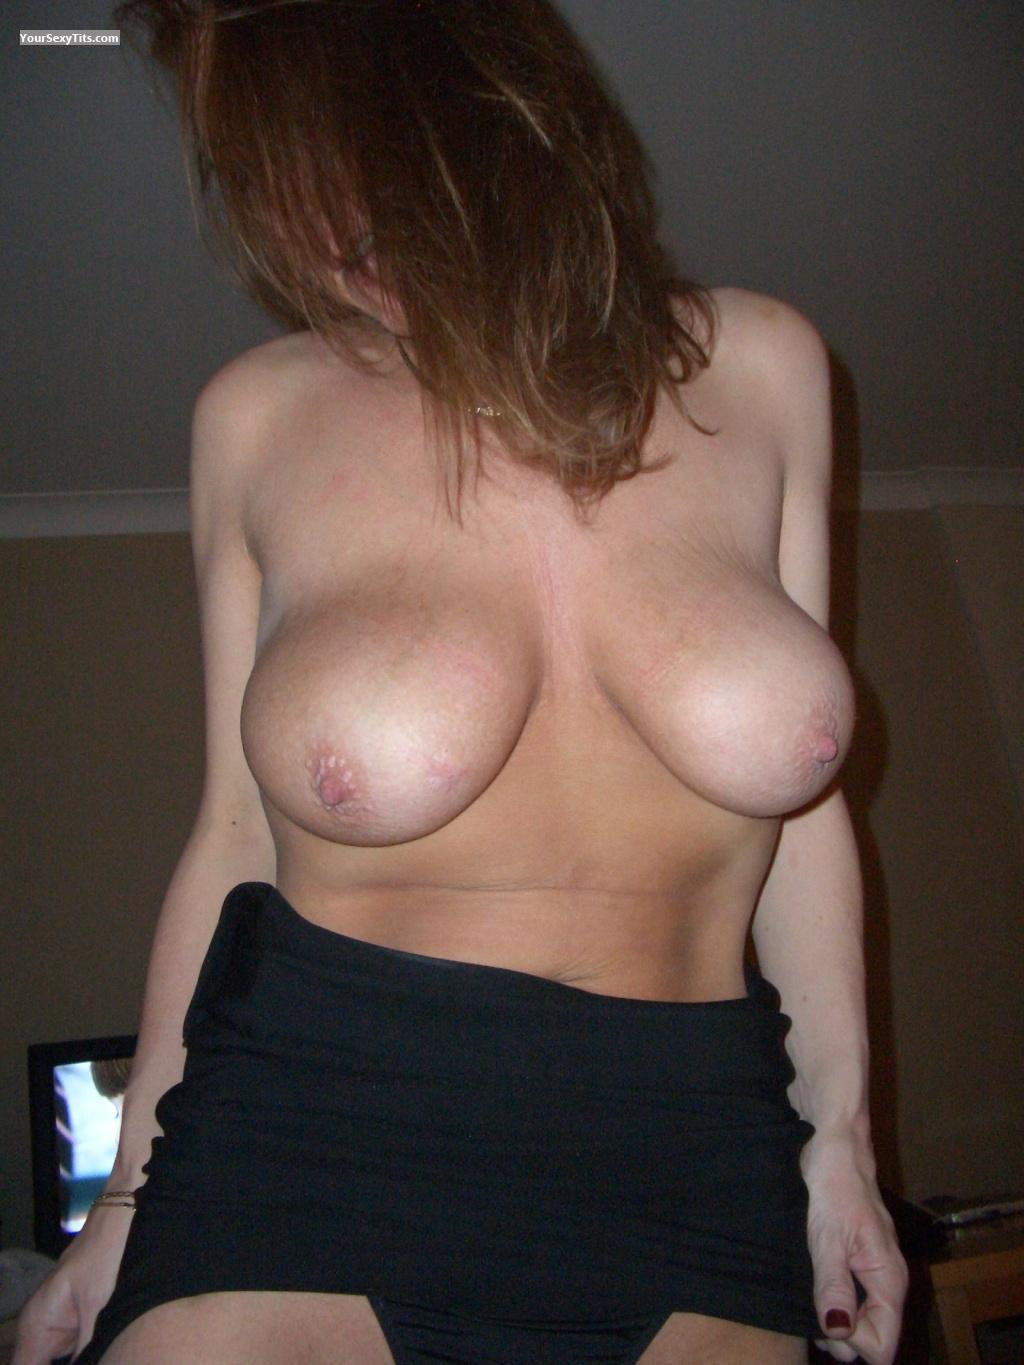 Tit Flash: Big Tits - Miss R from United Kingdom